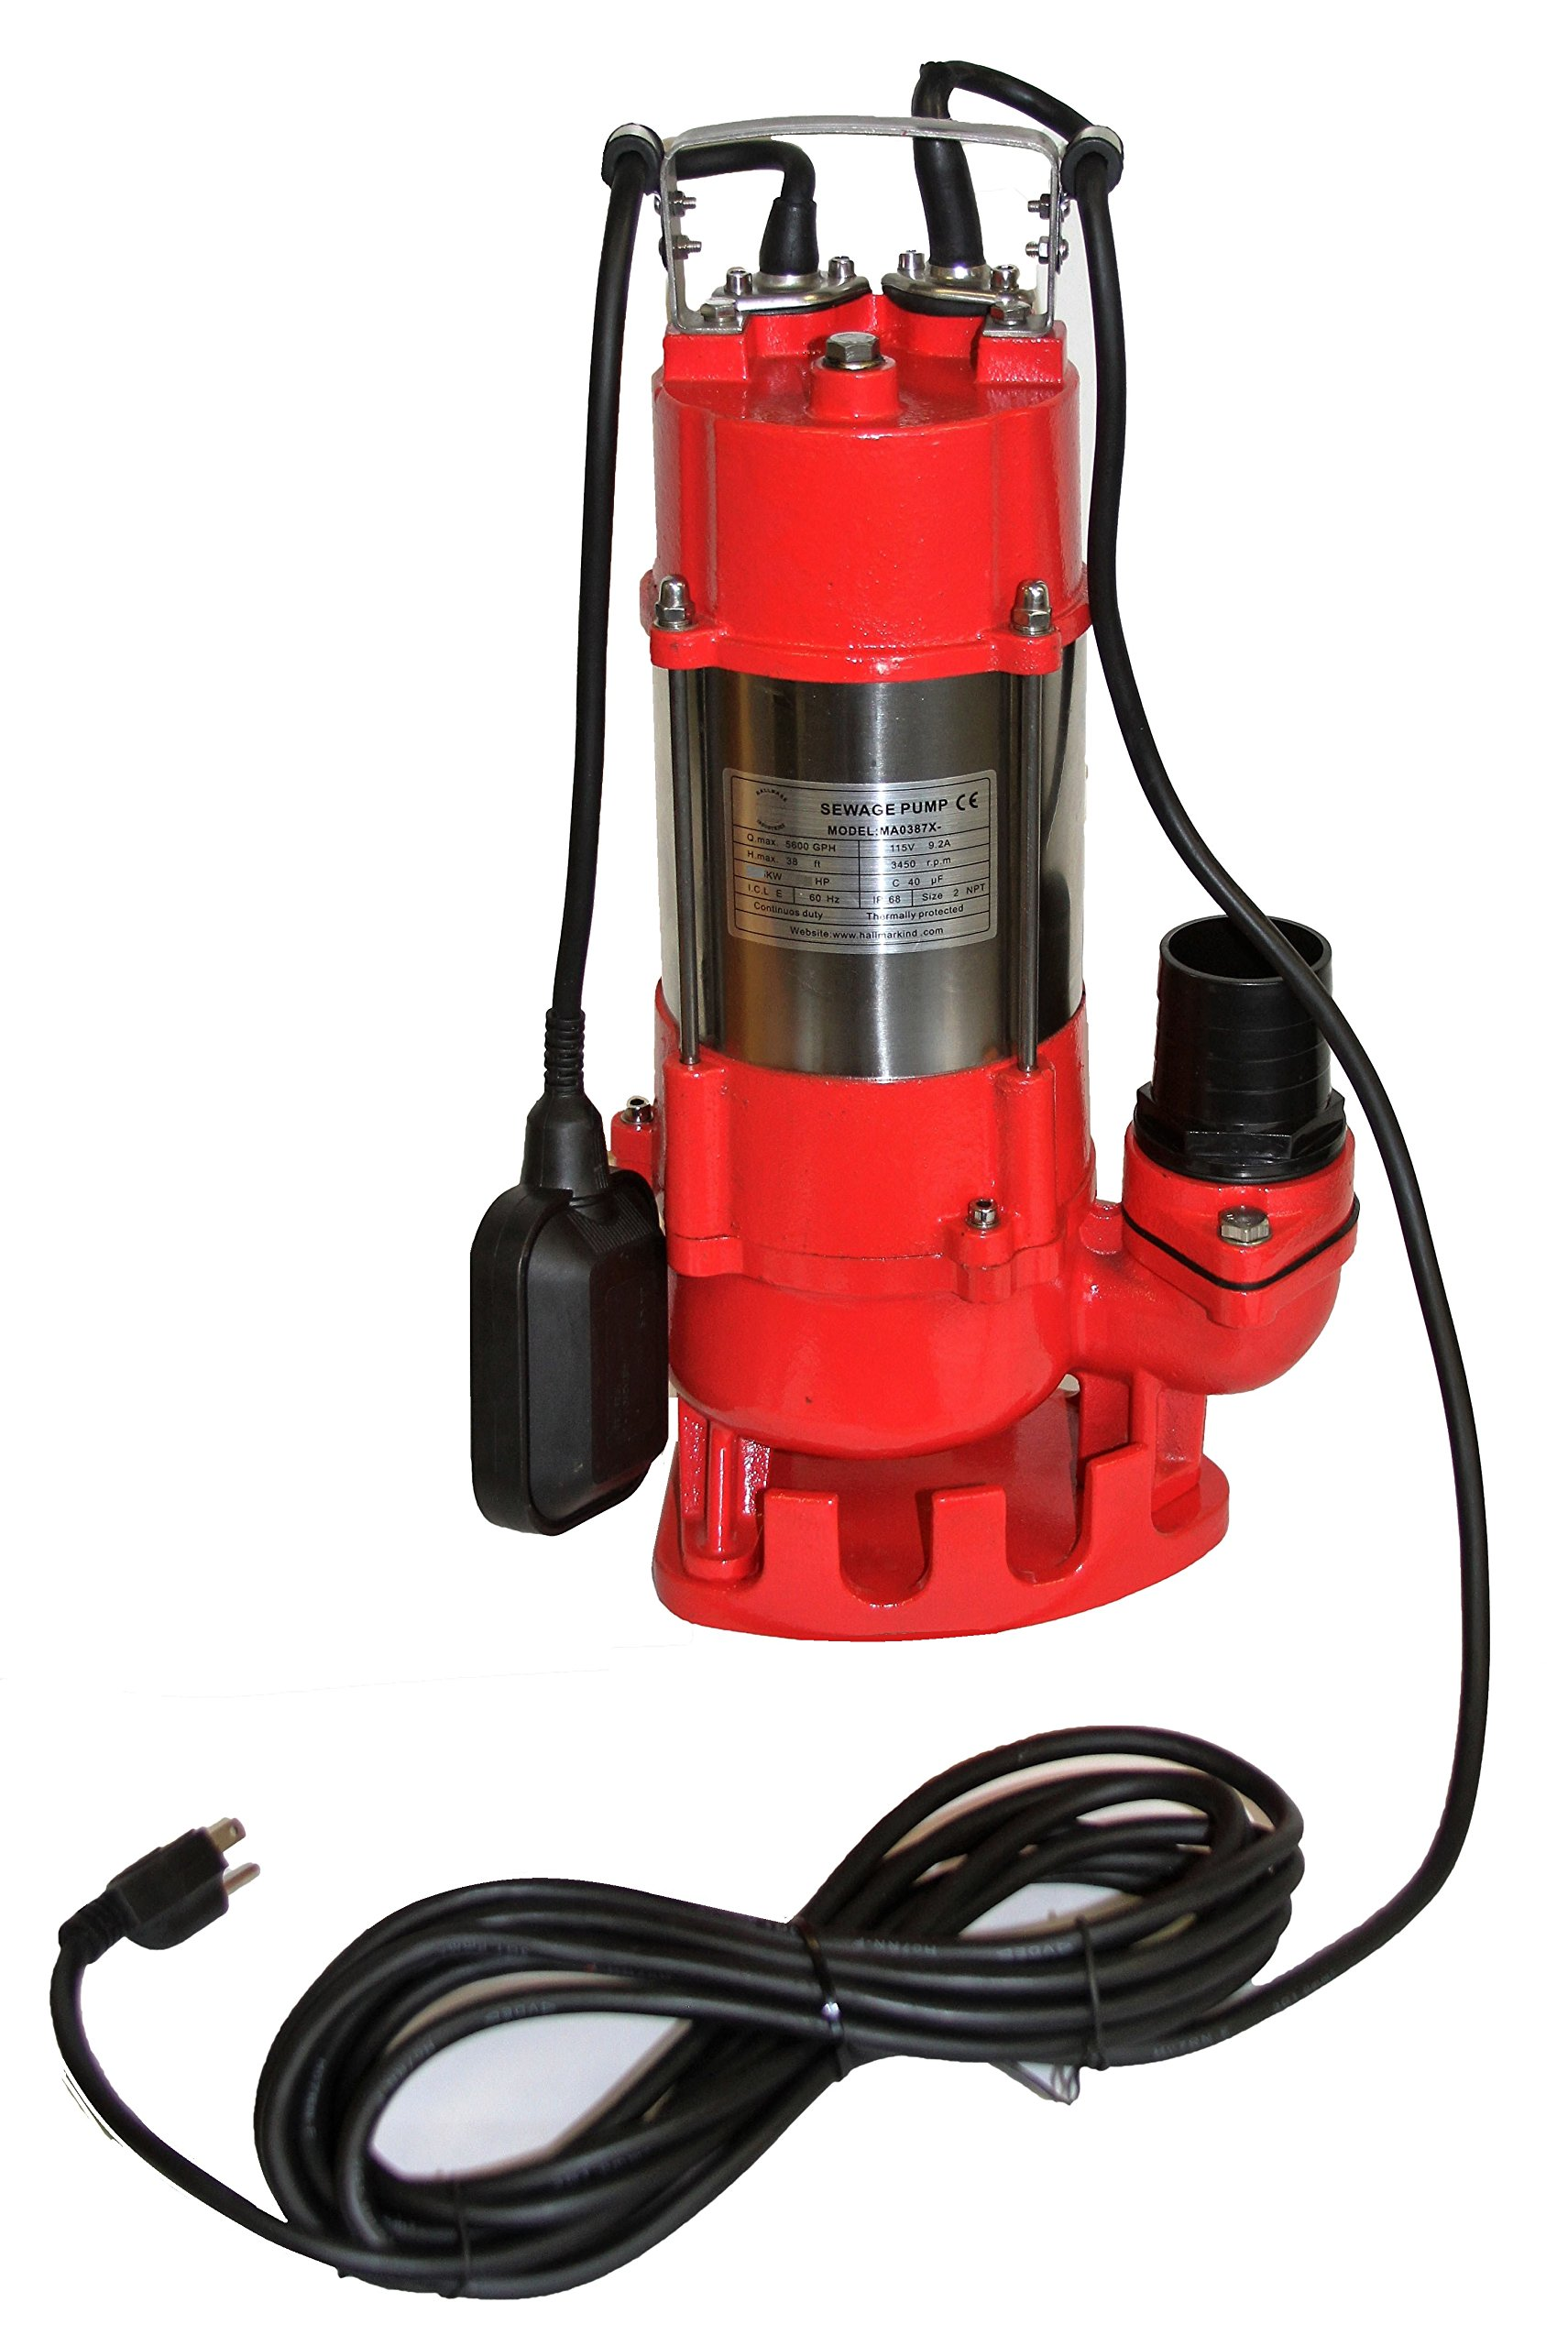 Hallmark Industries MA0387X-9 Sewage Pump, Stainless Steel, 1hp, 115V, with Float Switch, 7250 GPH/49' Lift, 20' Cable, Heavy Duty, Maximum Flow Rate, Stainless Steel